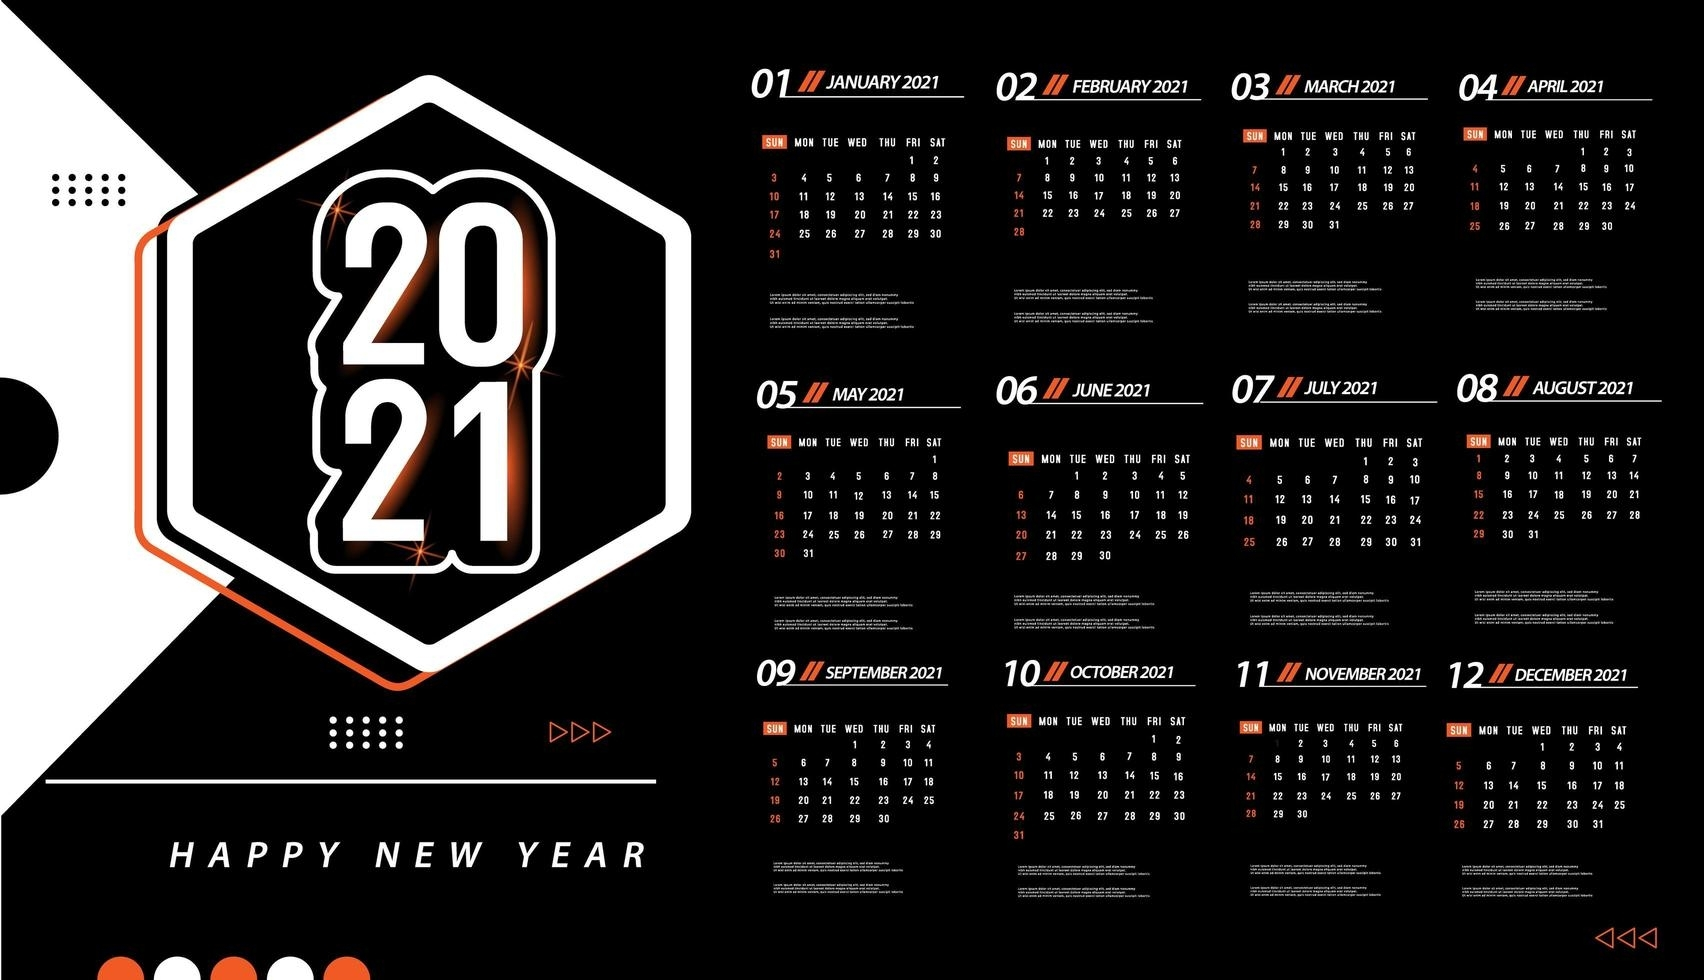 One Page 2021 Calendar Template - Download Free Vectors